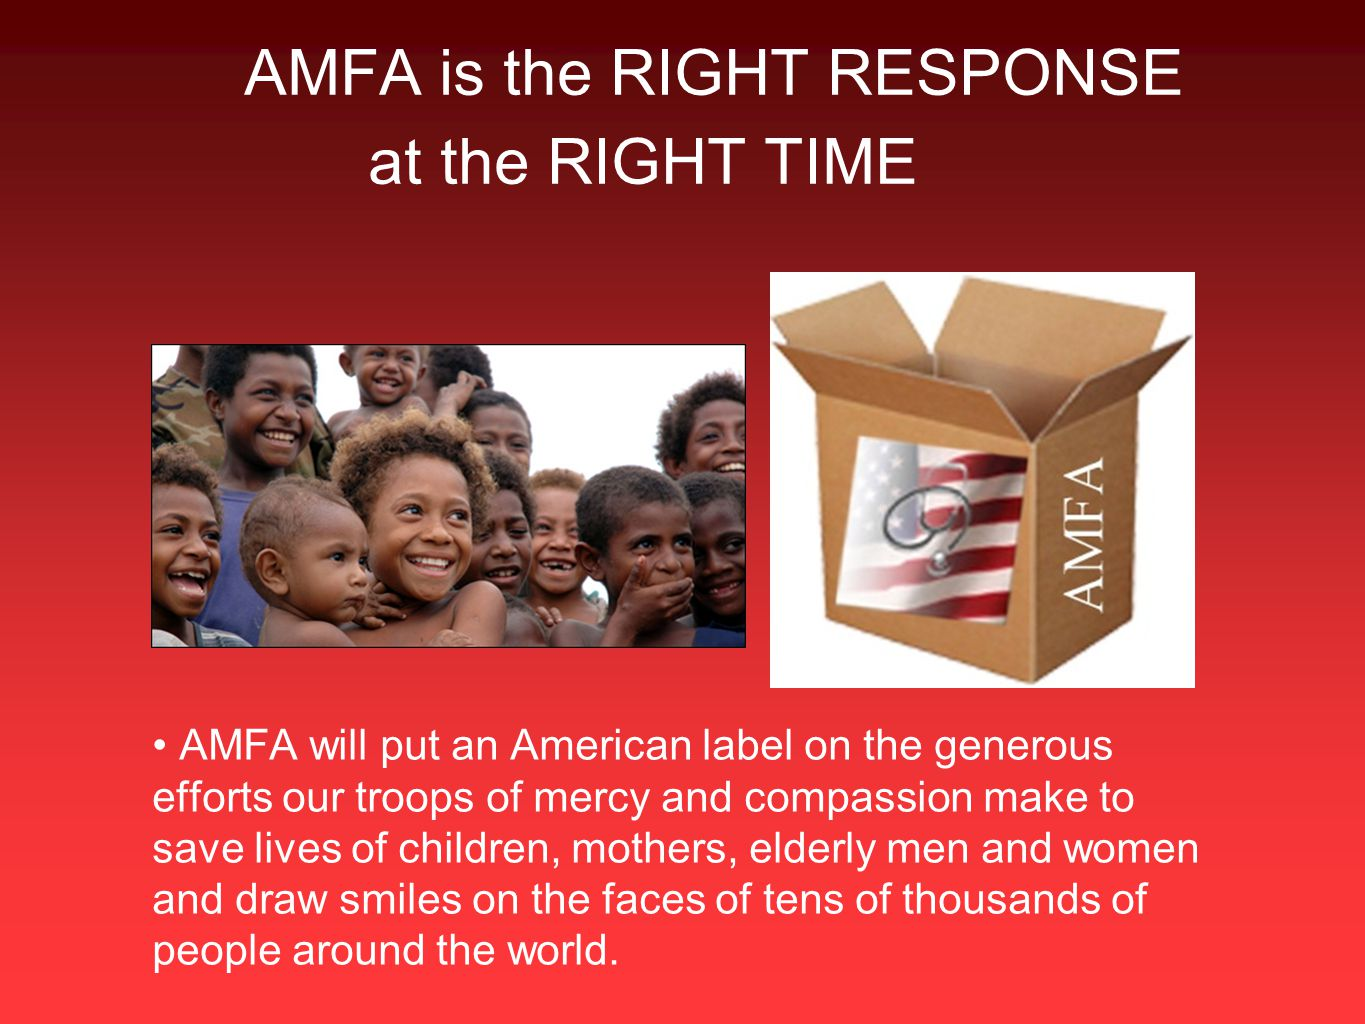 AMFA is the RIGHT RESPONSE at the RIGHT TIME AMFA will put an American label on the generous efforts our troops of mercy and compassion make to save l